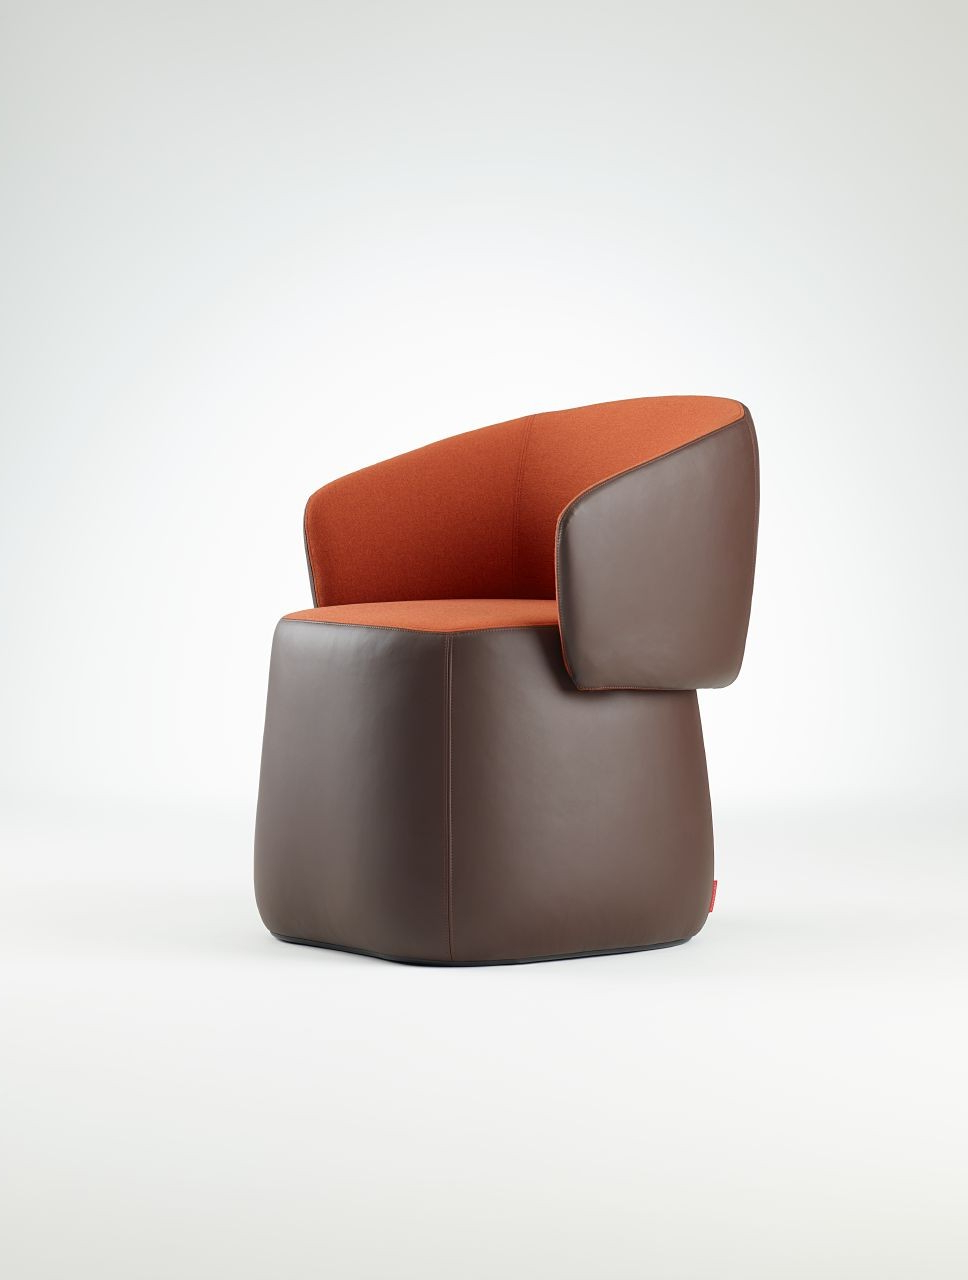 Haworth Openest Collection Chick Pouf With Back – Modern Planet In Current Chadwick Tomato Swivel Accent Chairs (Gallery 3 of 20)